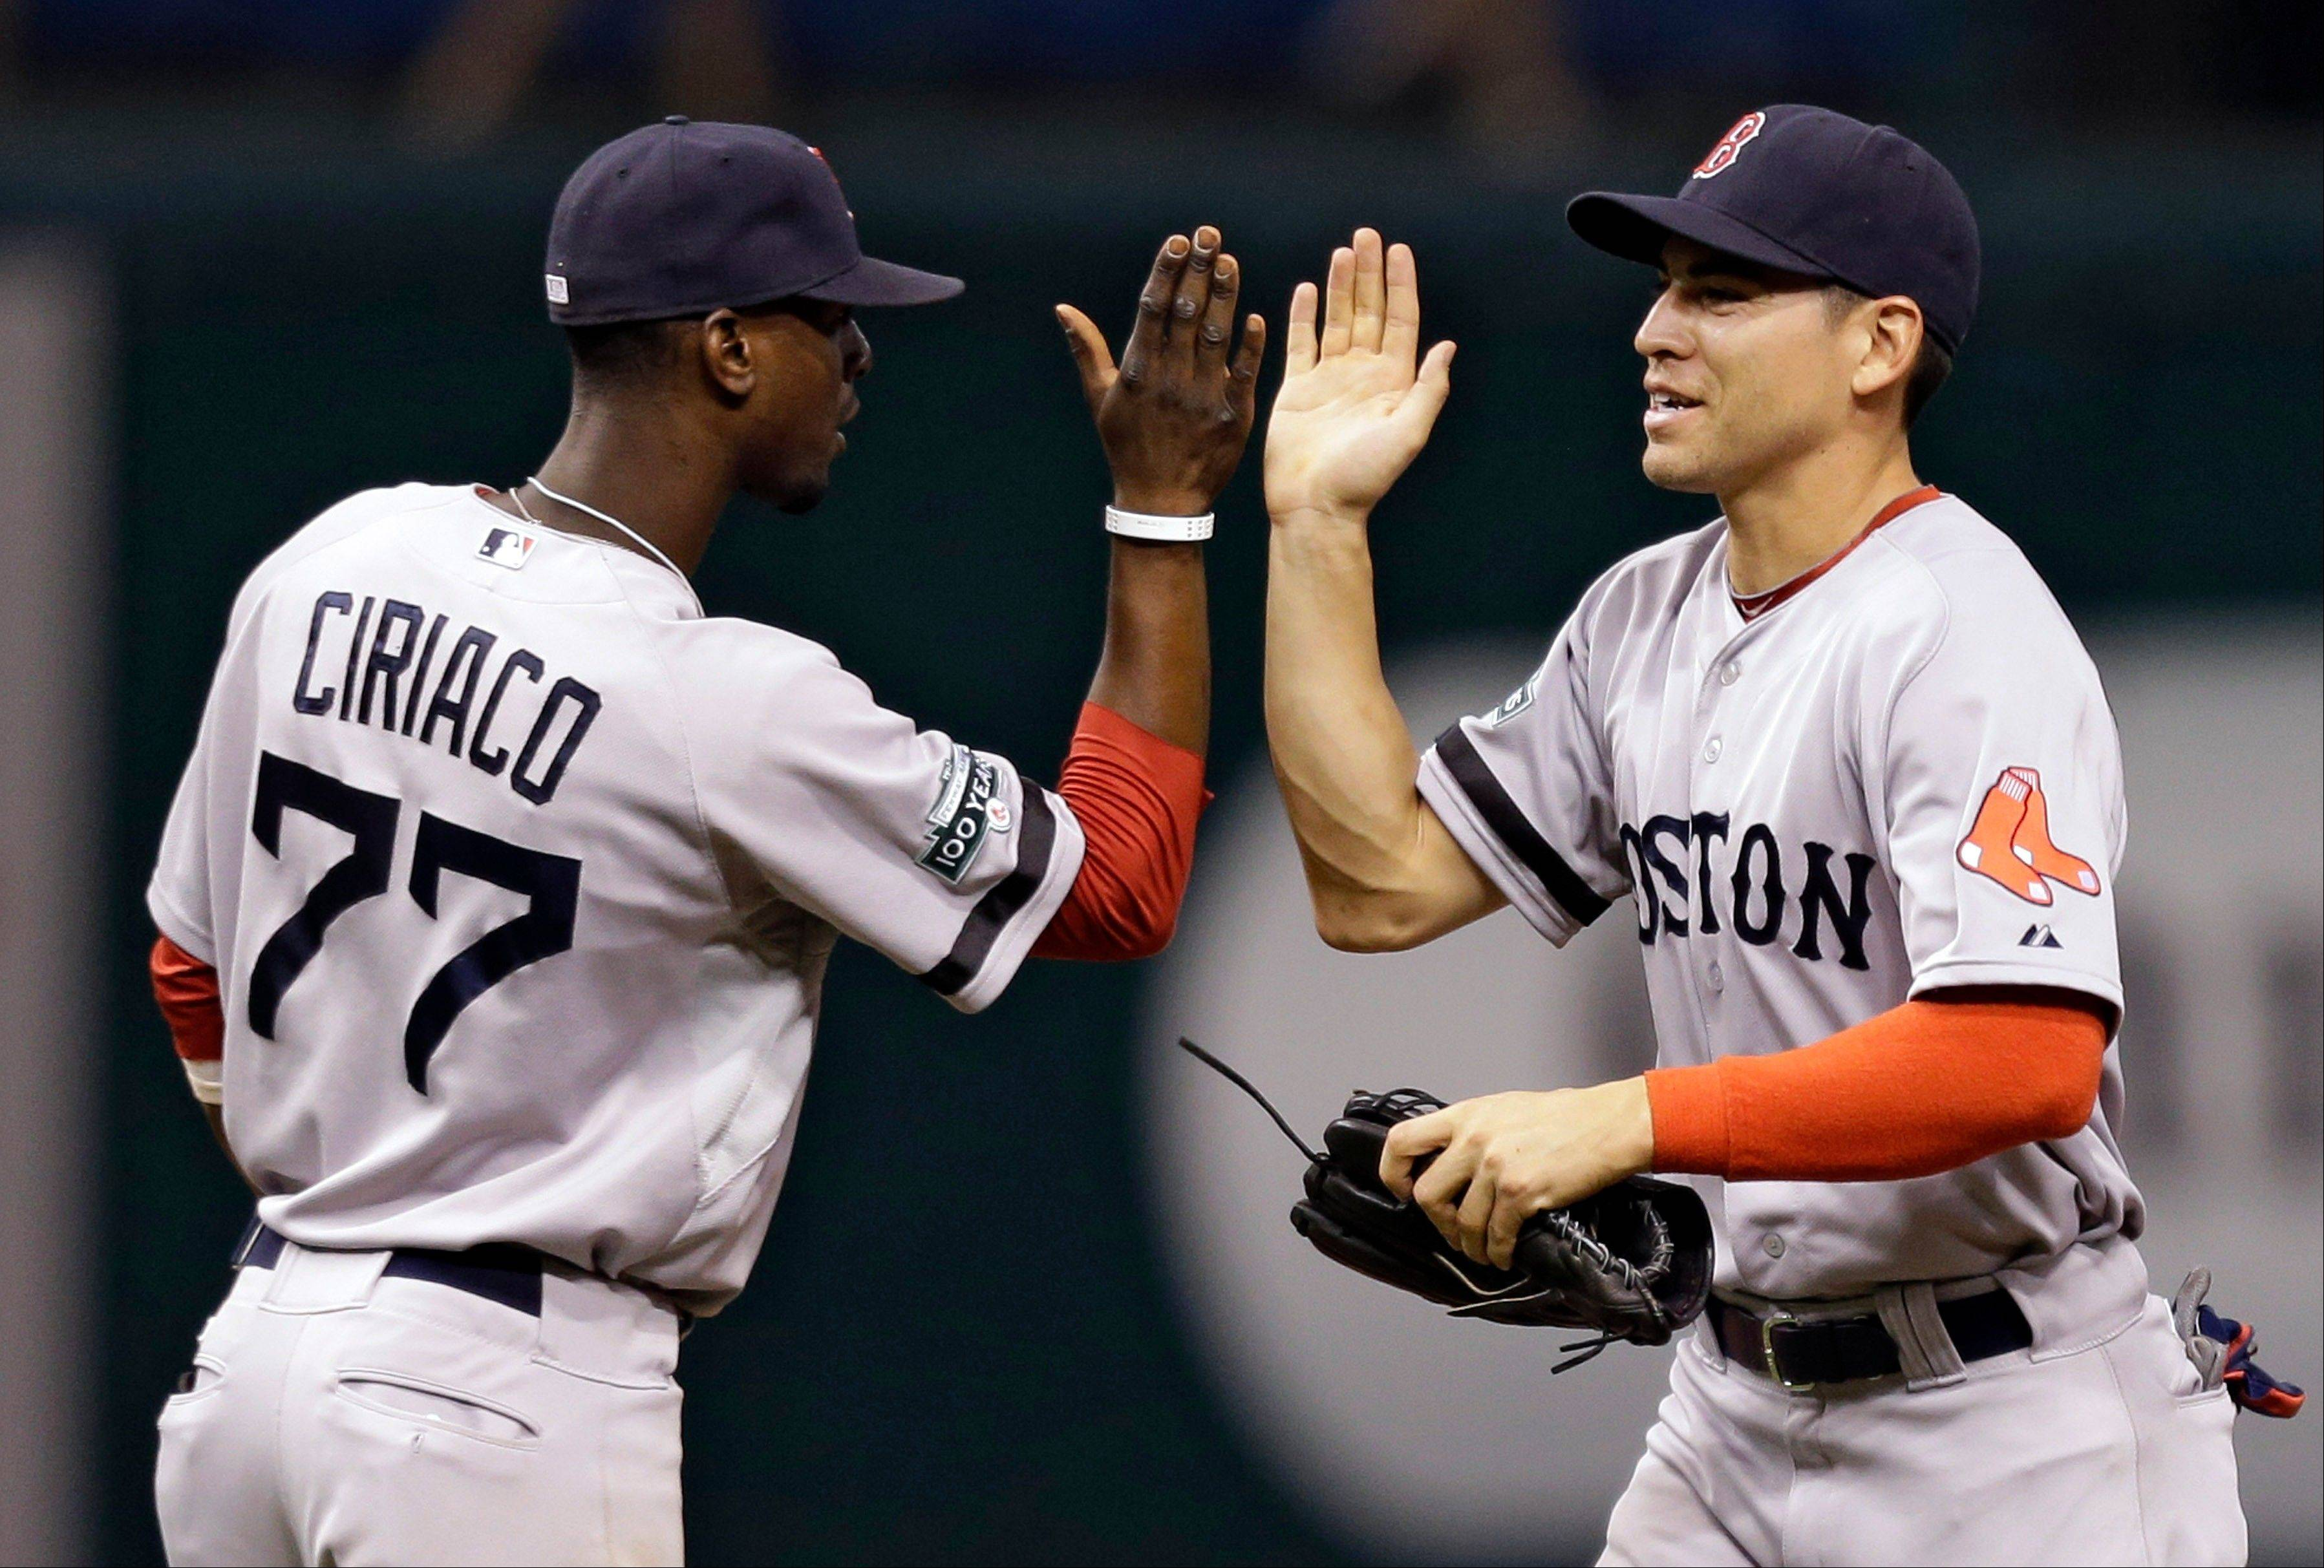 Boston�s Jacoby Ellsbury, right, high-fives teammate Pedro Ciriaco after the Red Sox defeated the Tampa Bay Rays 5-2 on Monday in St. Petersburg, Fla.